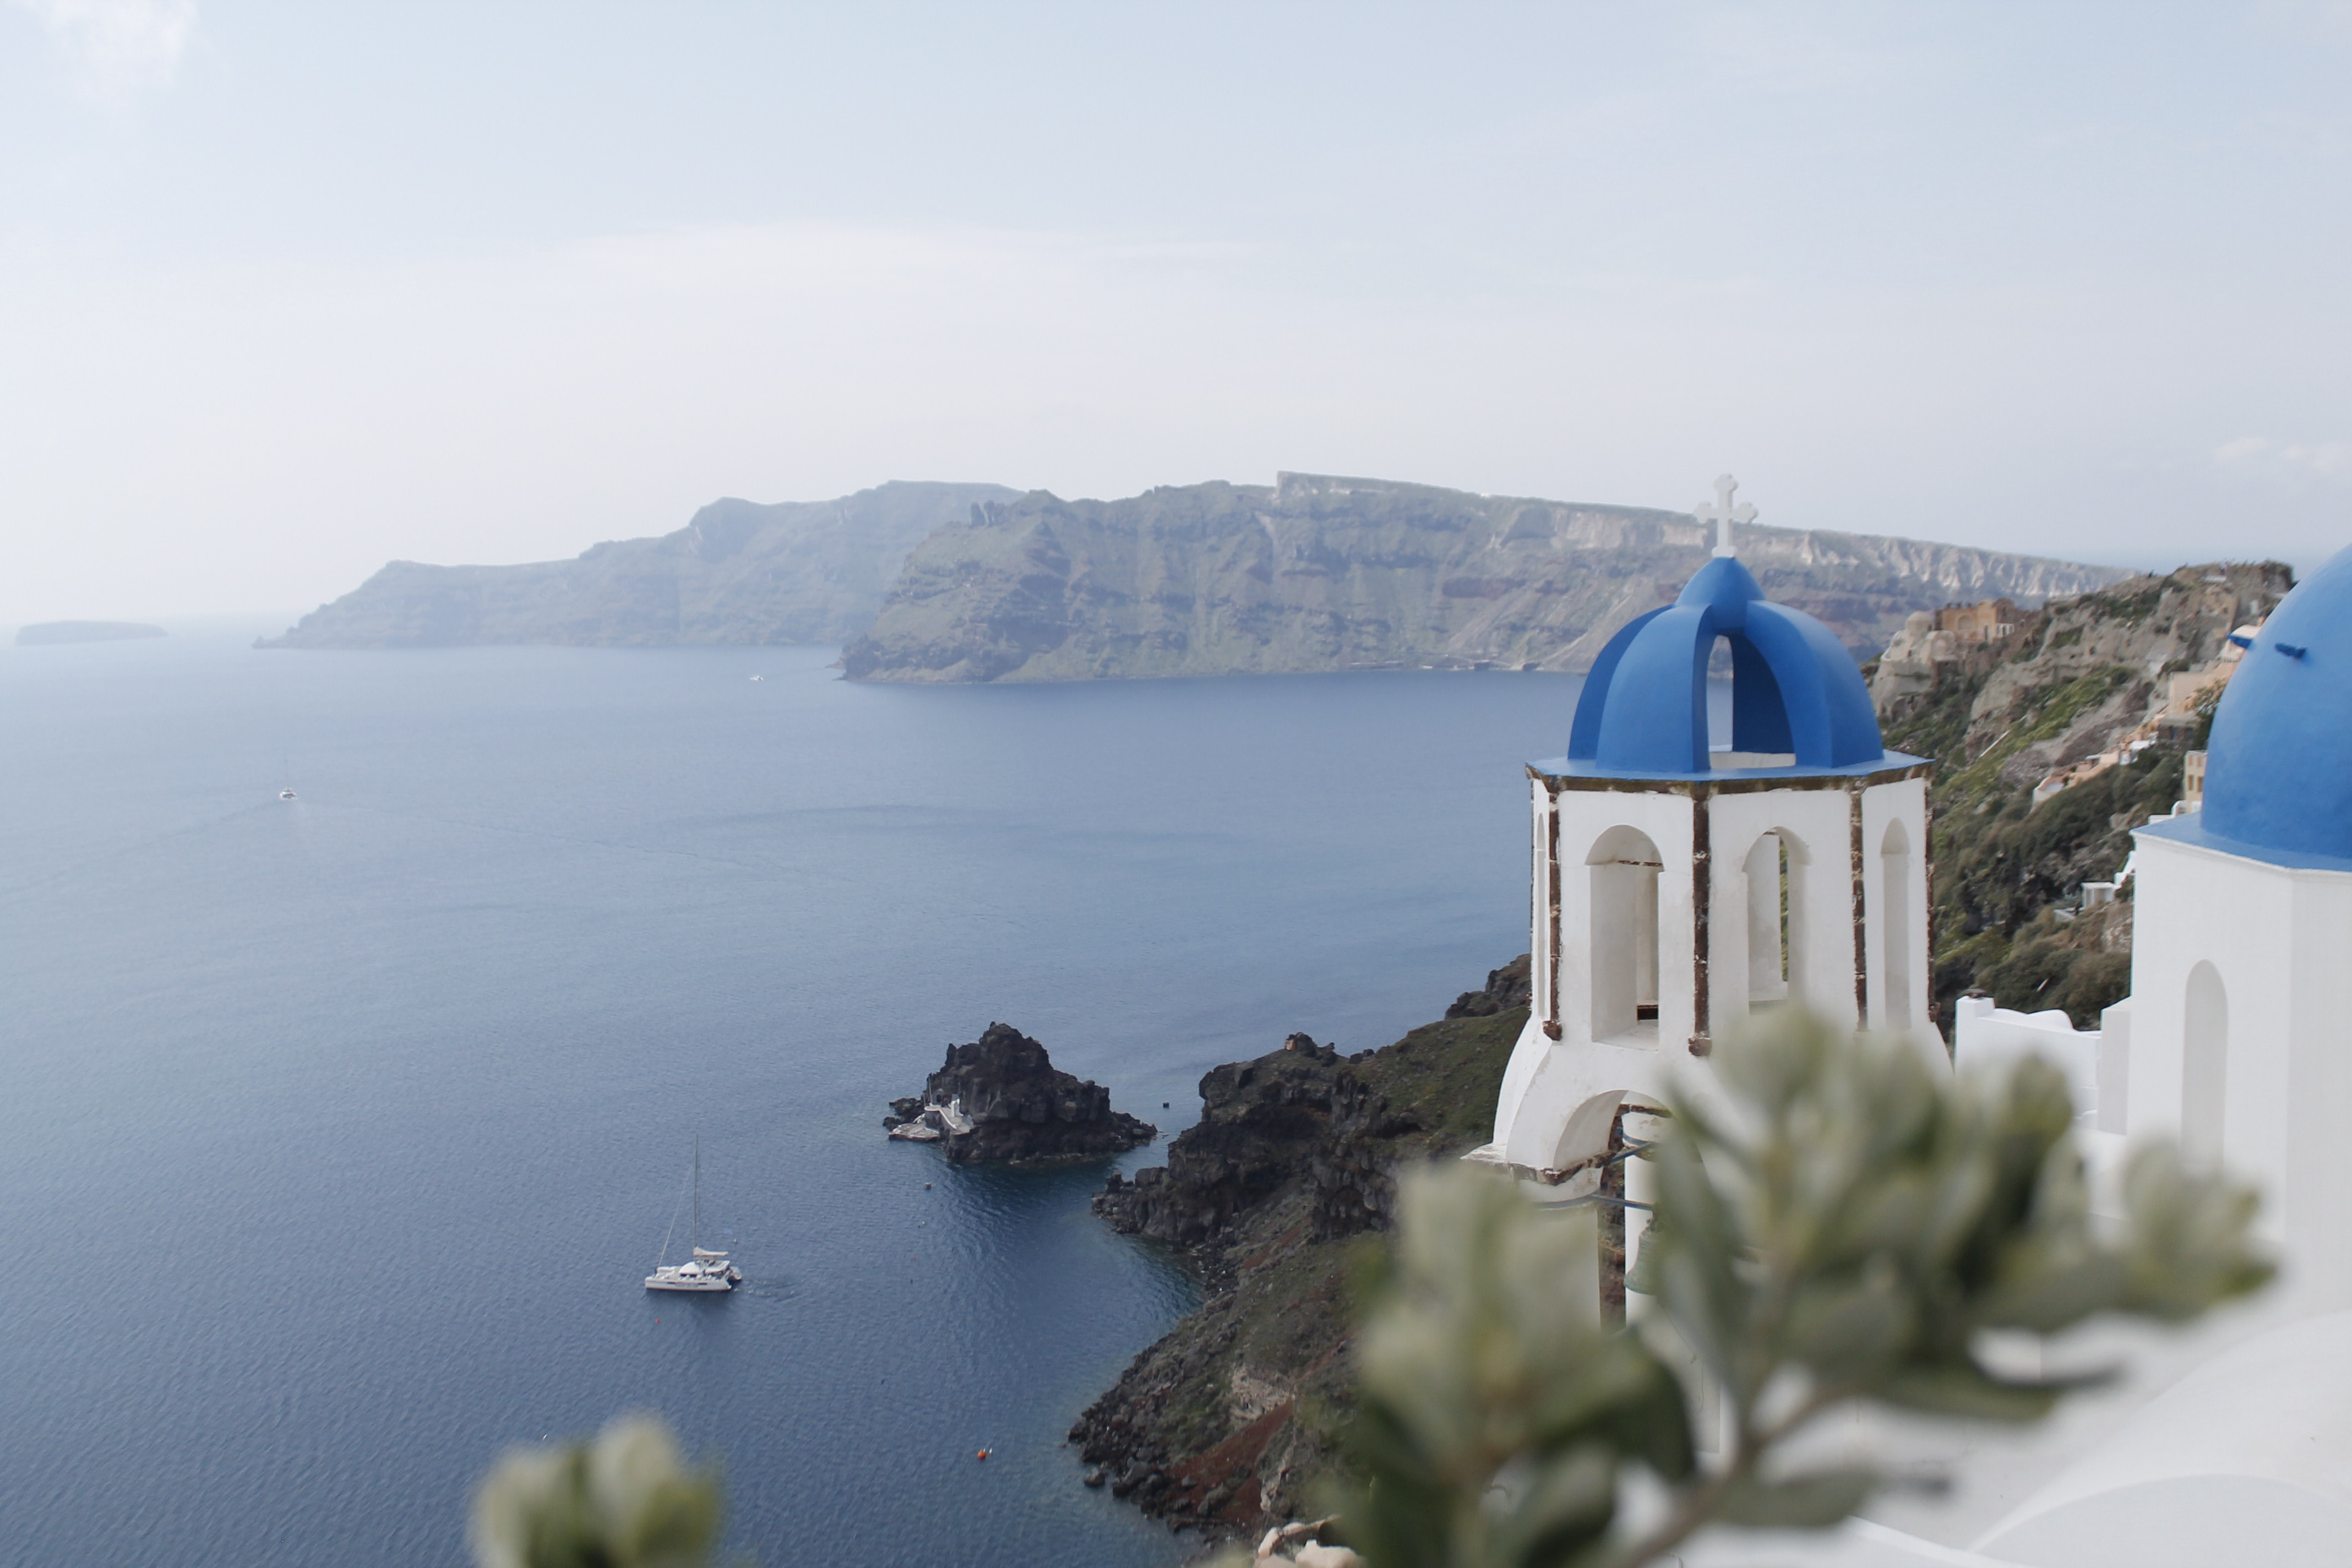 selective focus photography of white-and-blue dome building in Santorini, Greece during daytime